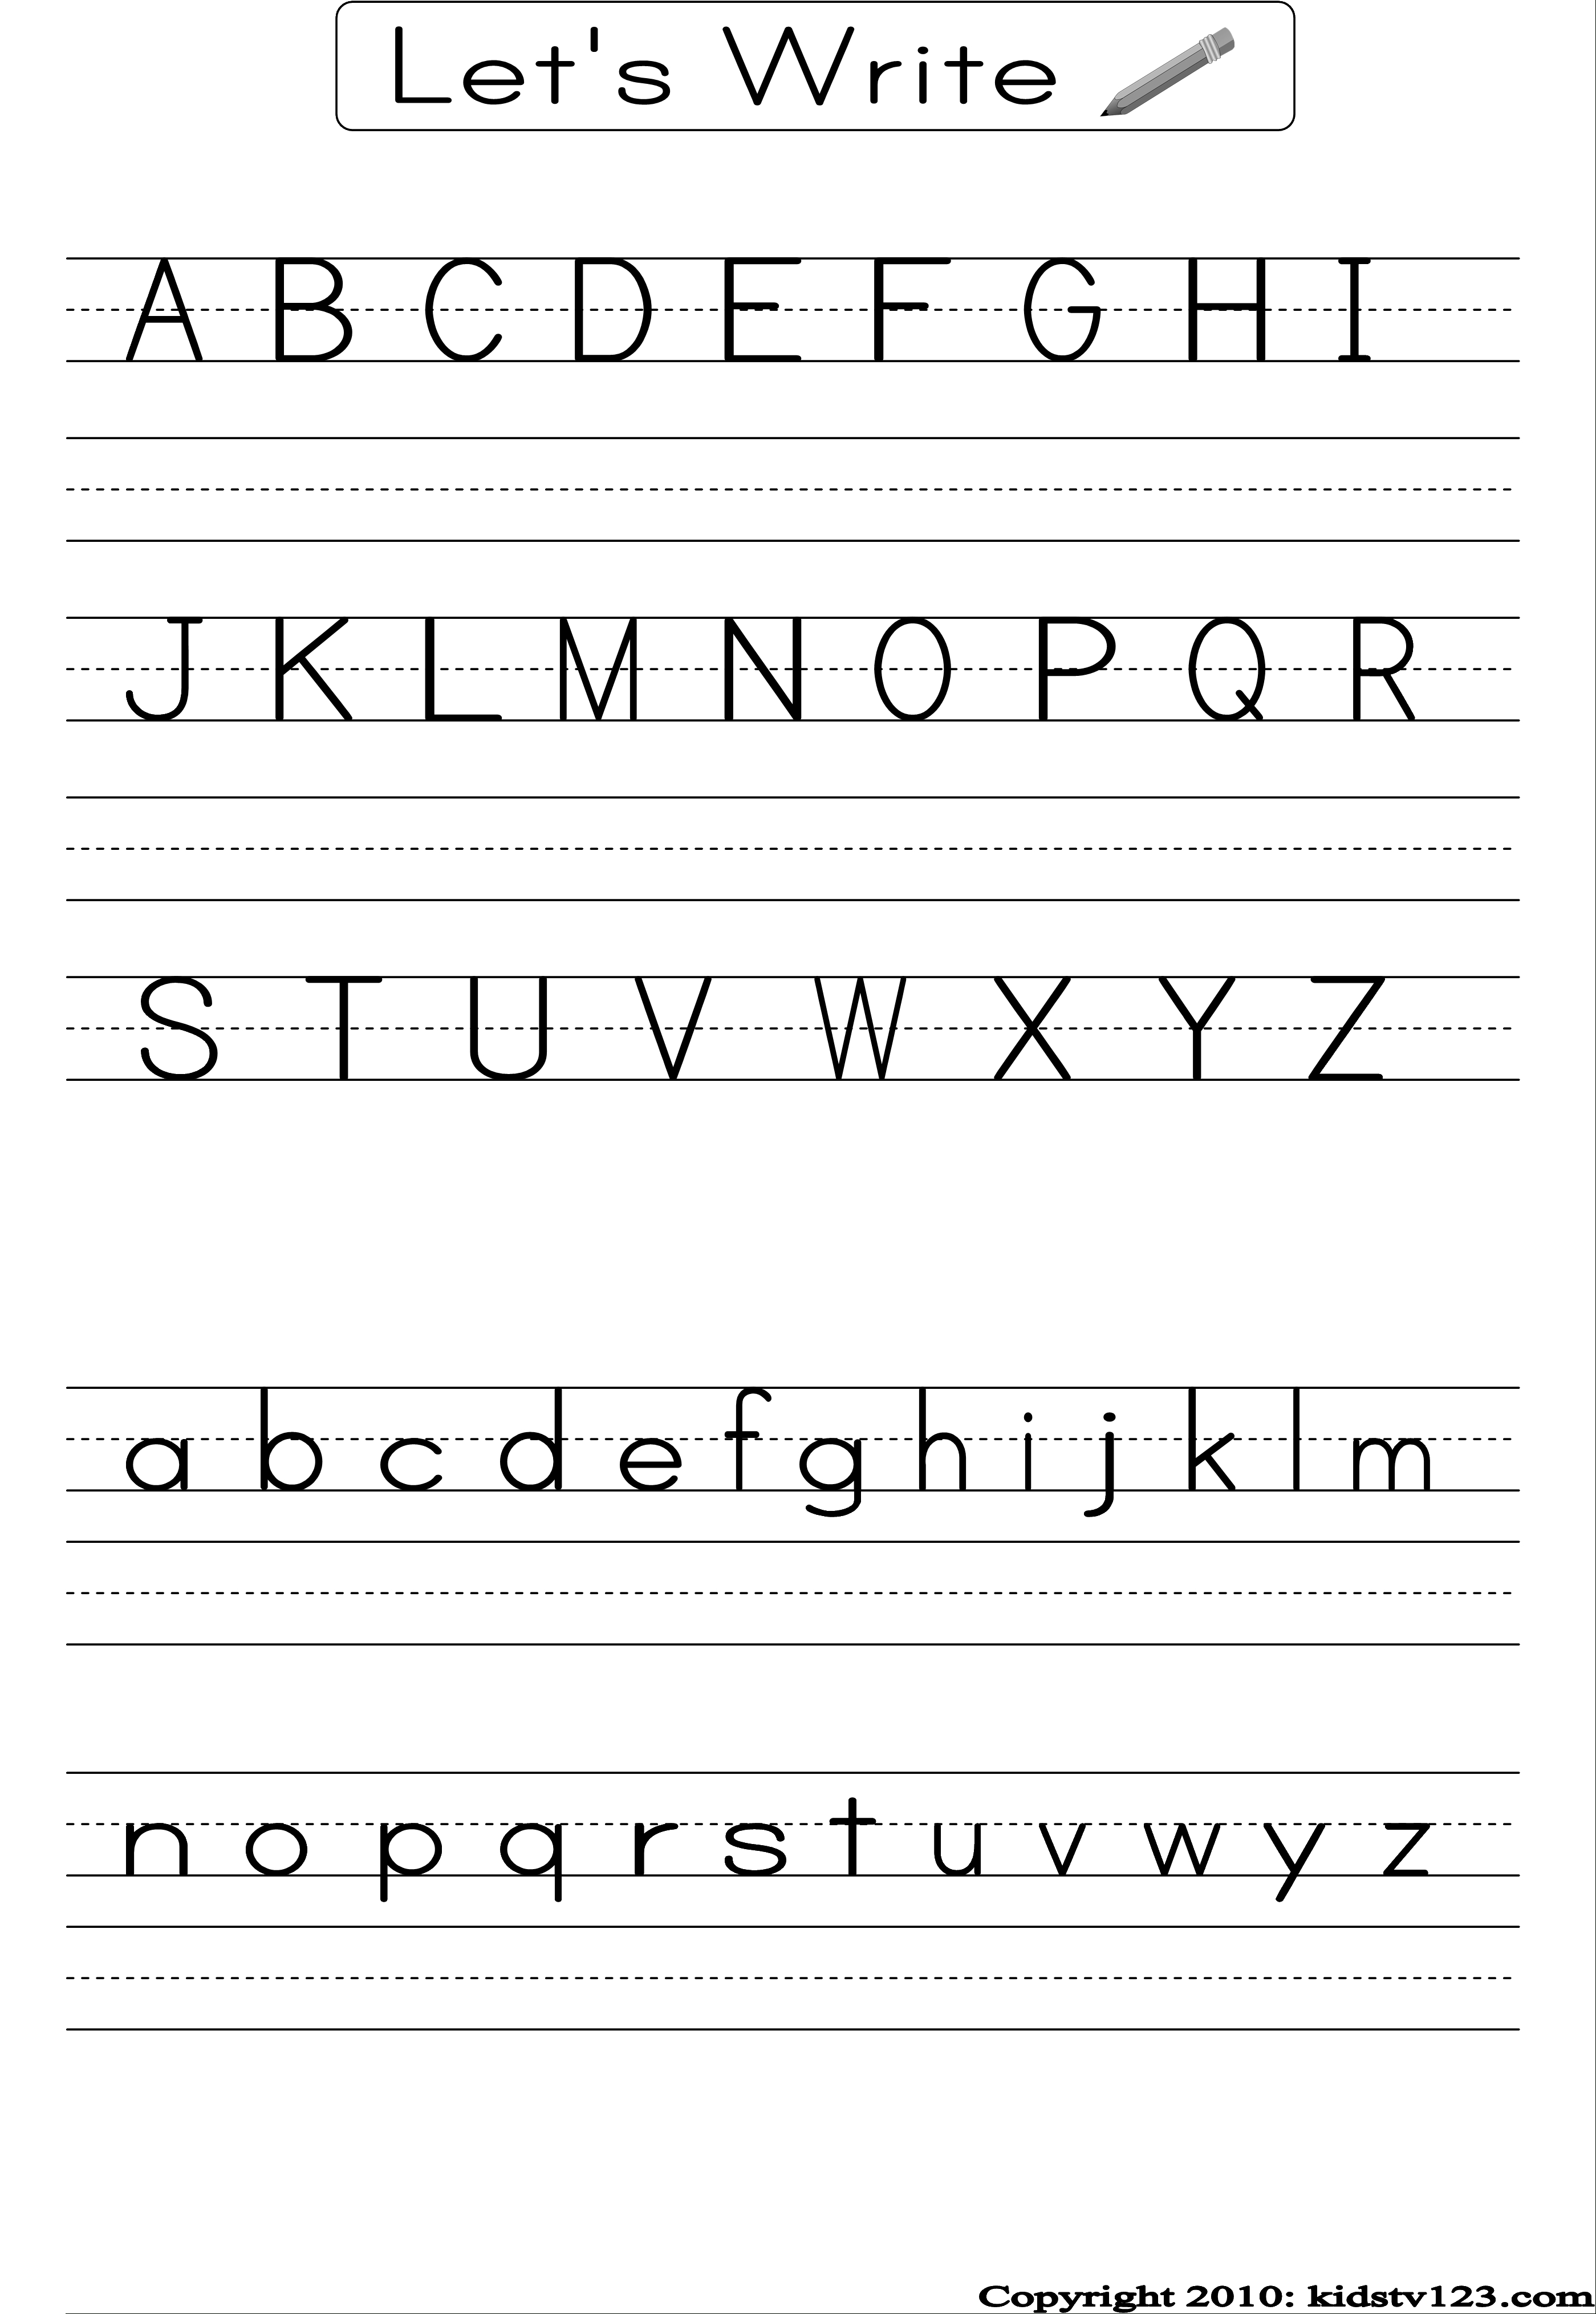 Free Printable Alphabet Worksheets, Preschool Writing And Pattern - Free Printable Letter Writing Worksheets